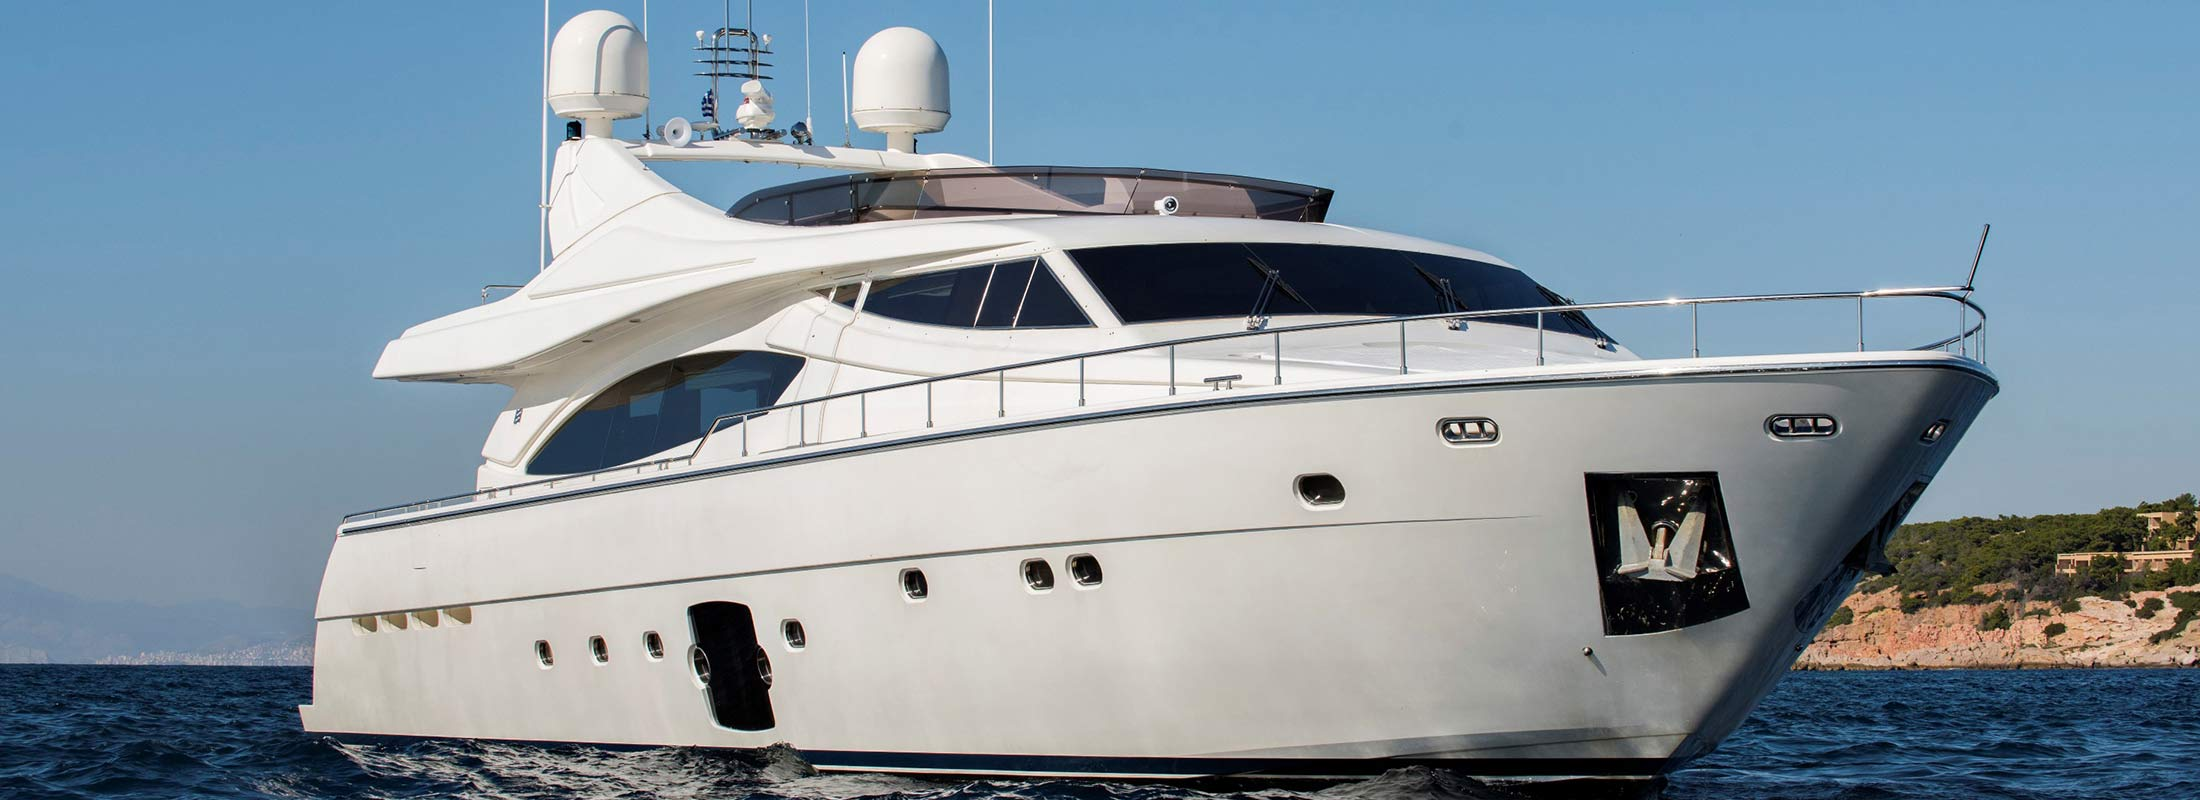 Day Off Motor Yacht for Charter Mediterranean slider 1